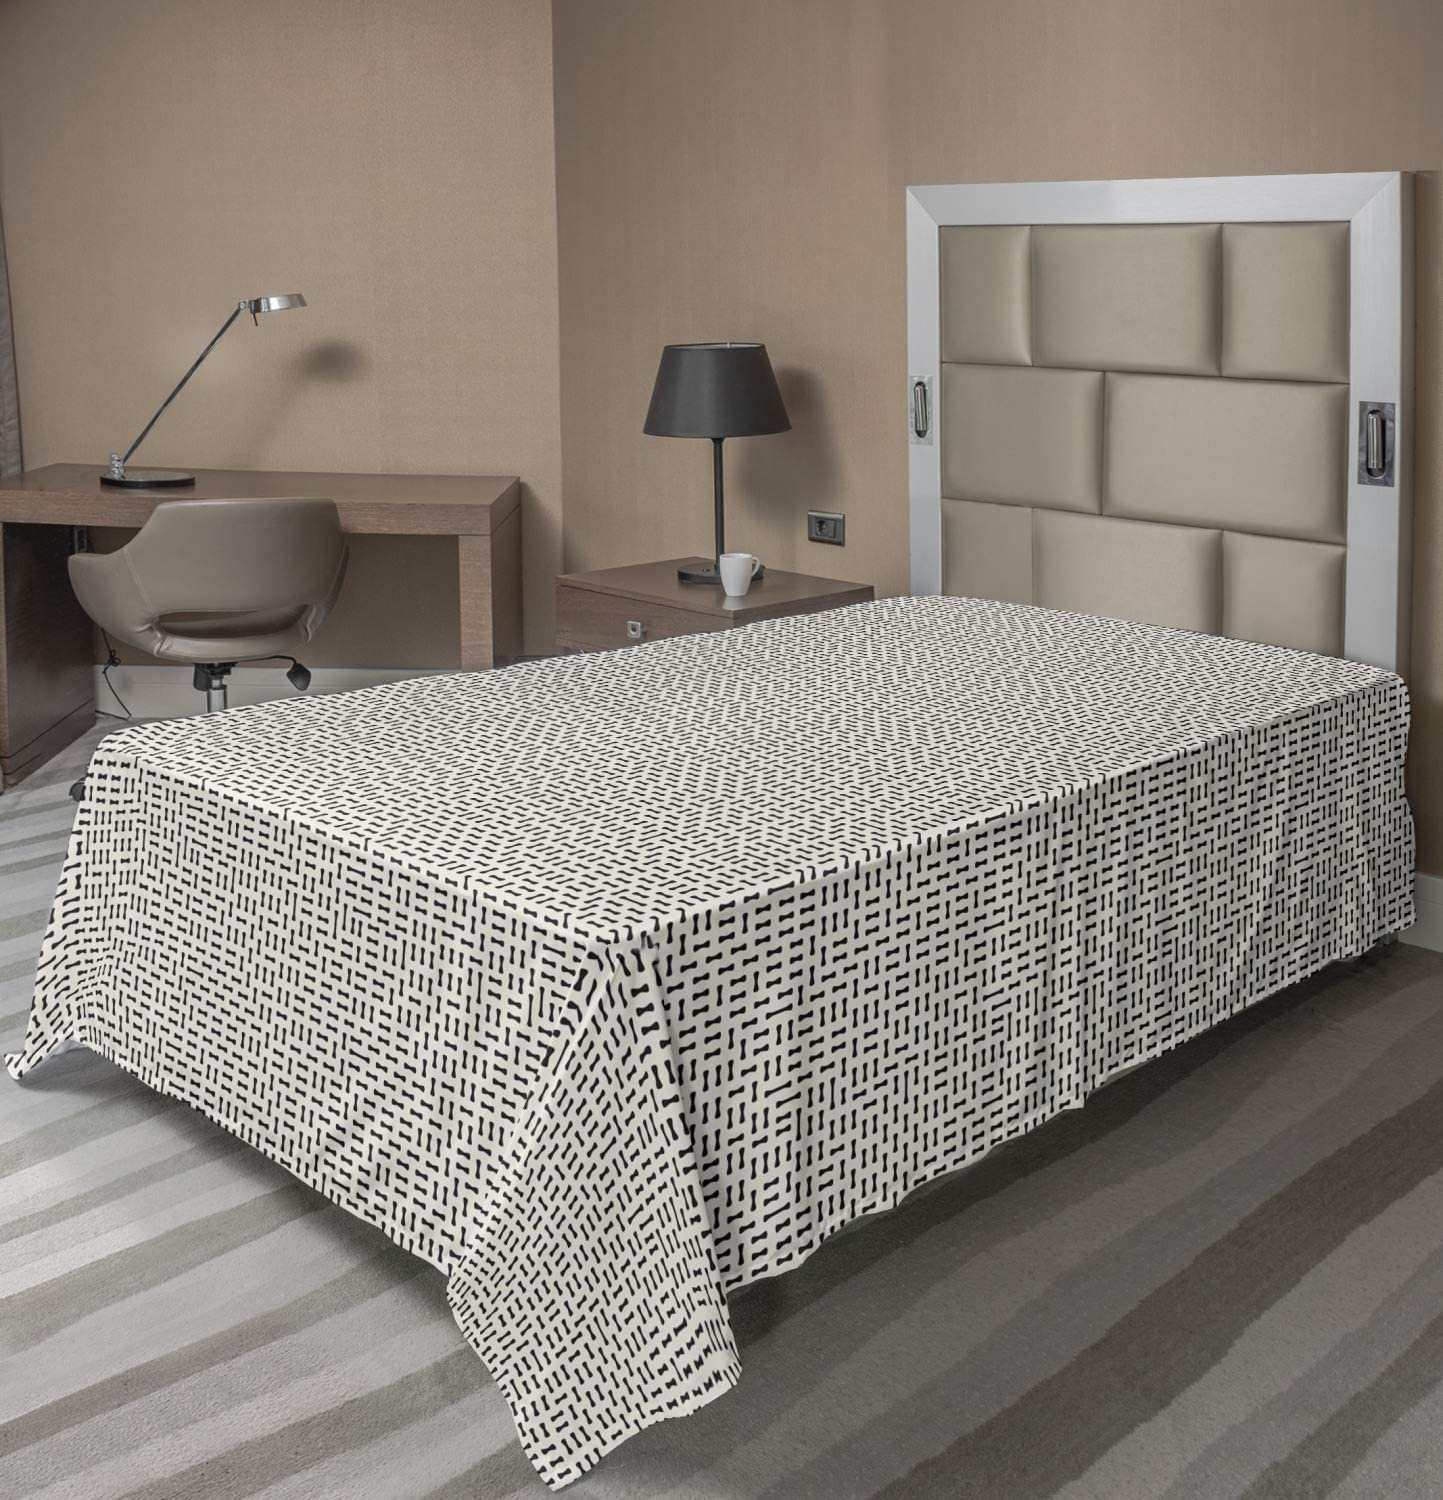 Ambesonne Modern Flat Sheet Omaha Mall Irregular 2021 new Rounded Monochr Shapes in